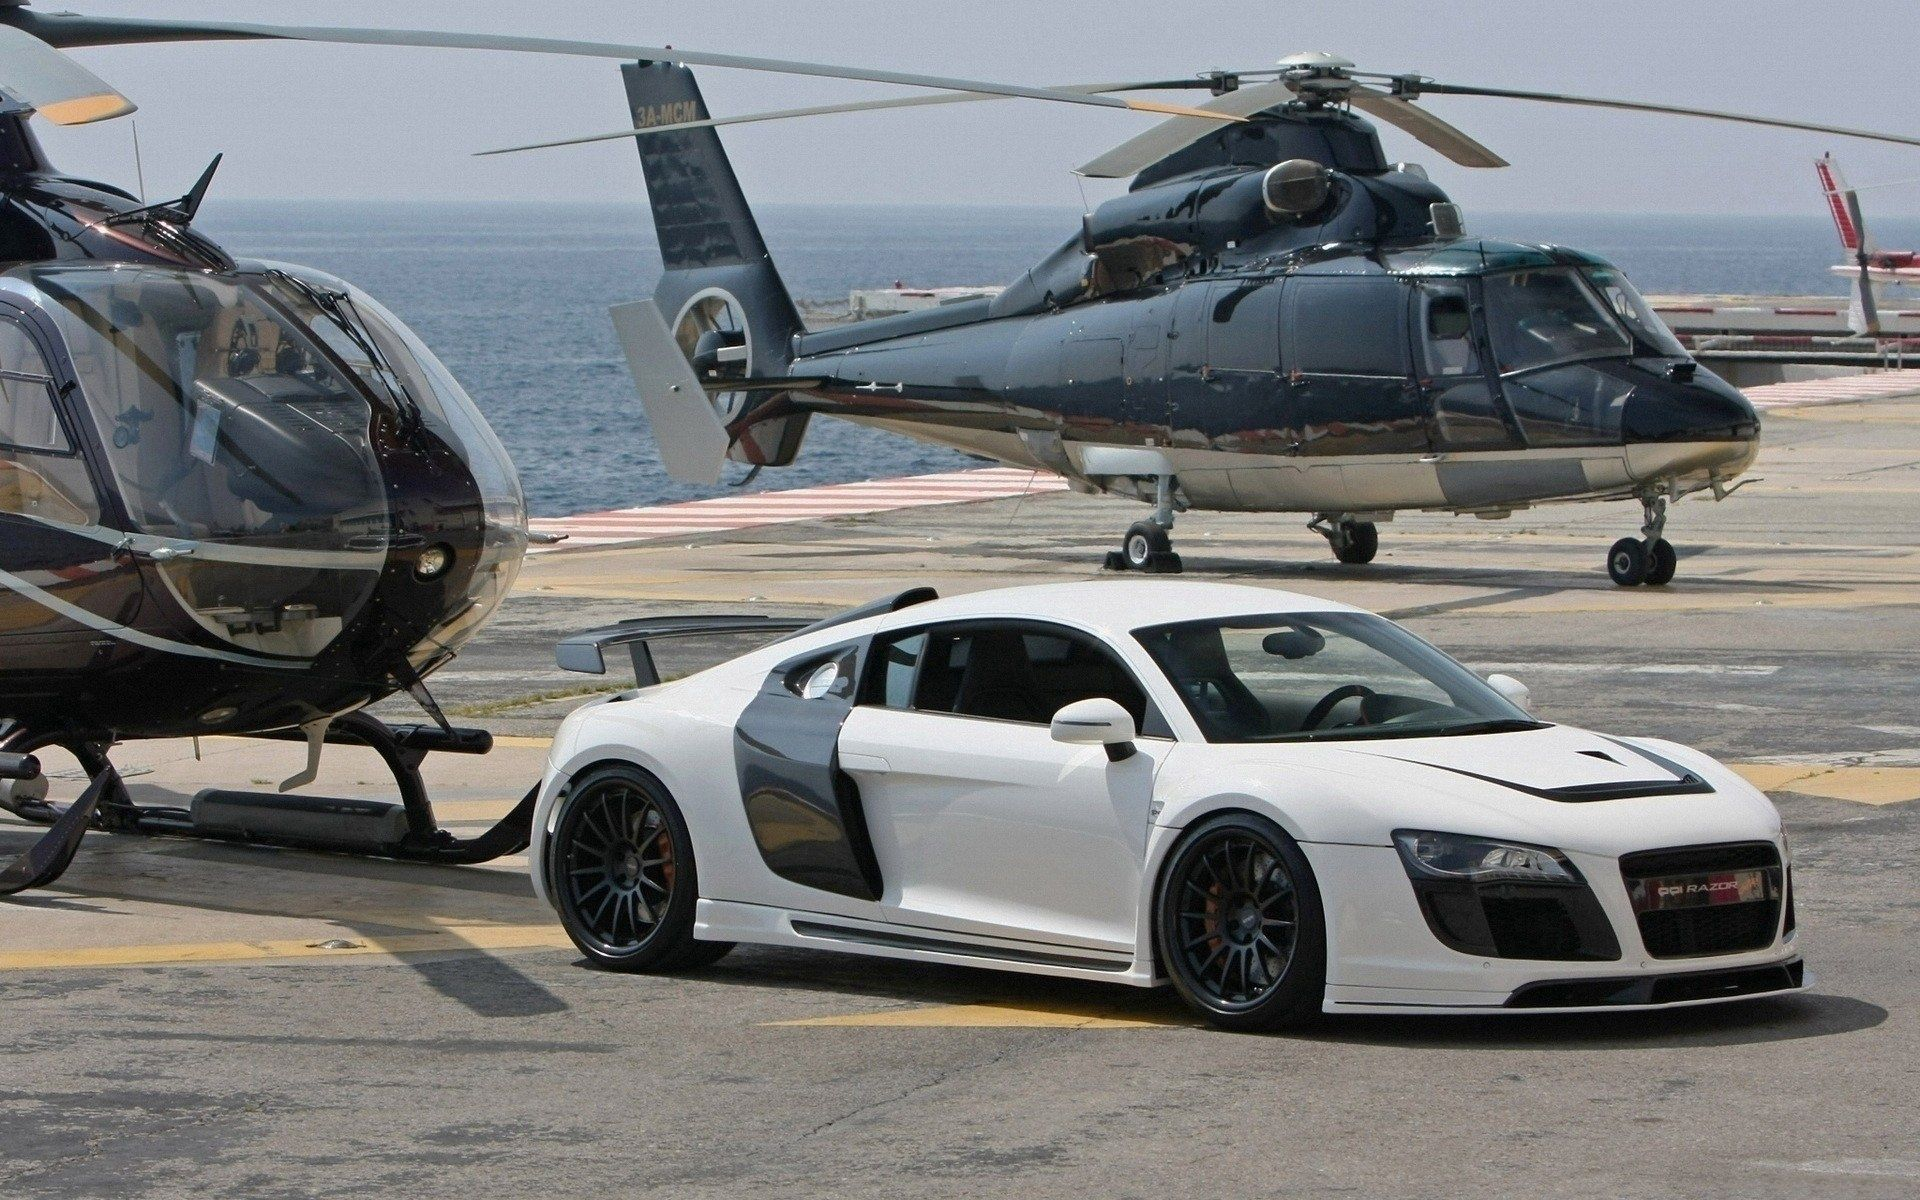 102952 download wallpaper Cars, Audi, Auto, Car, Machine, Helicopter, Style screensavers and pictures for free